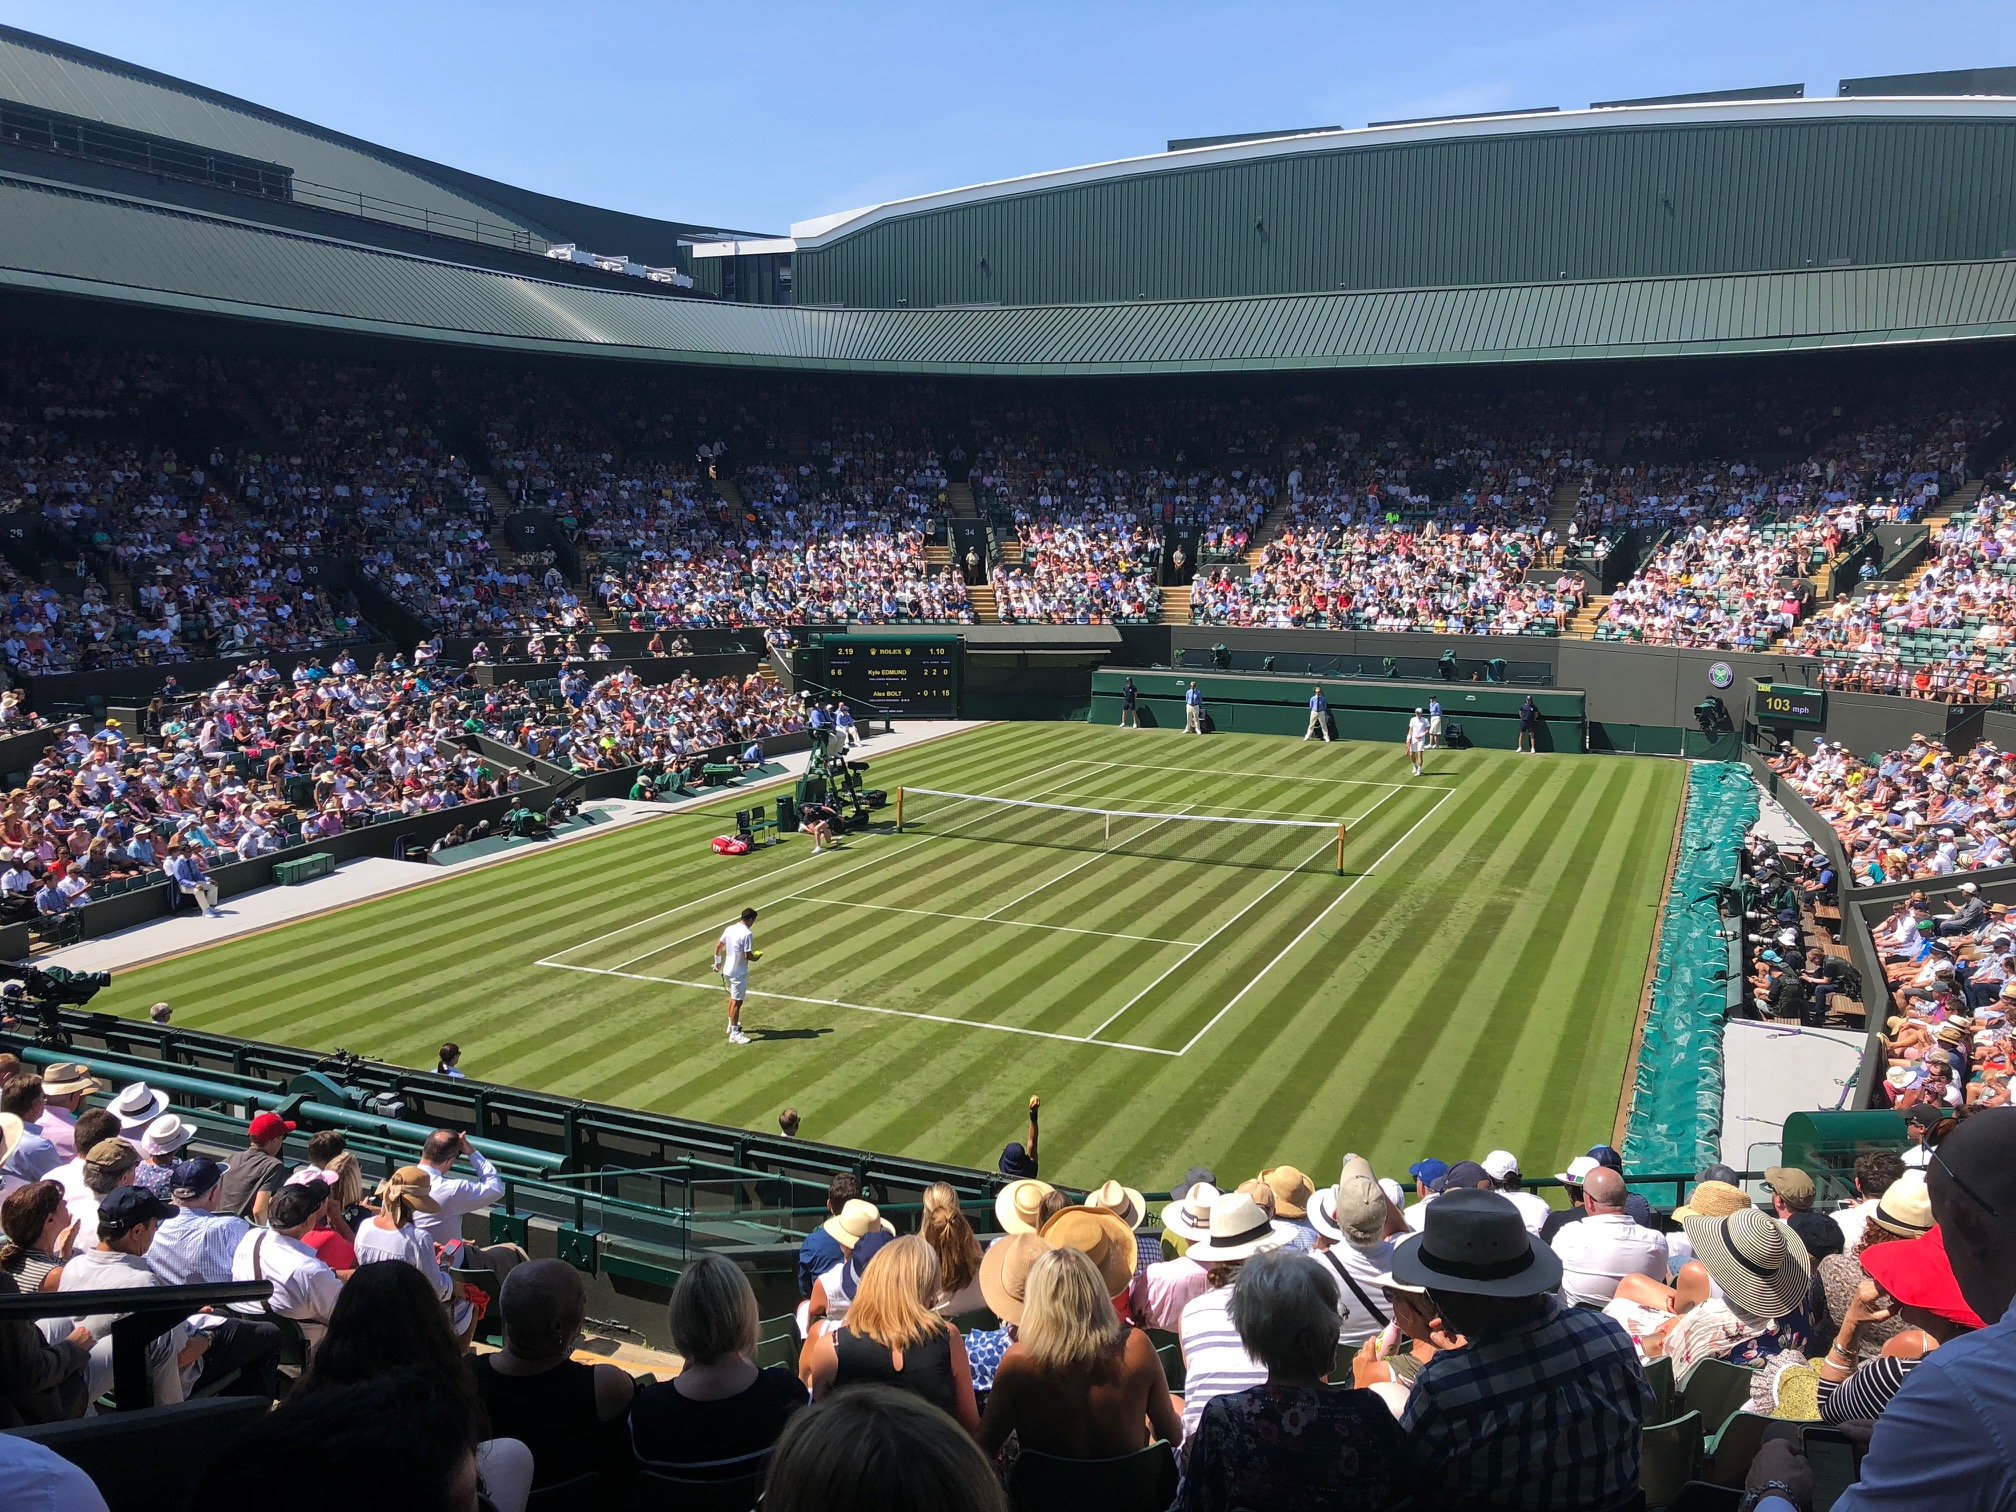 Number One Court at Wimbledon